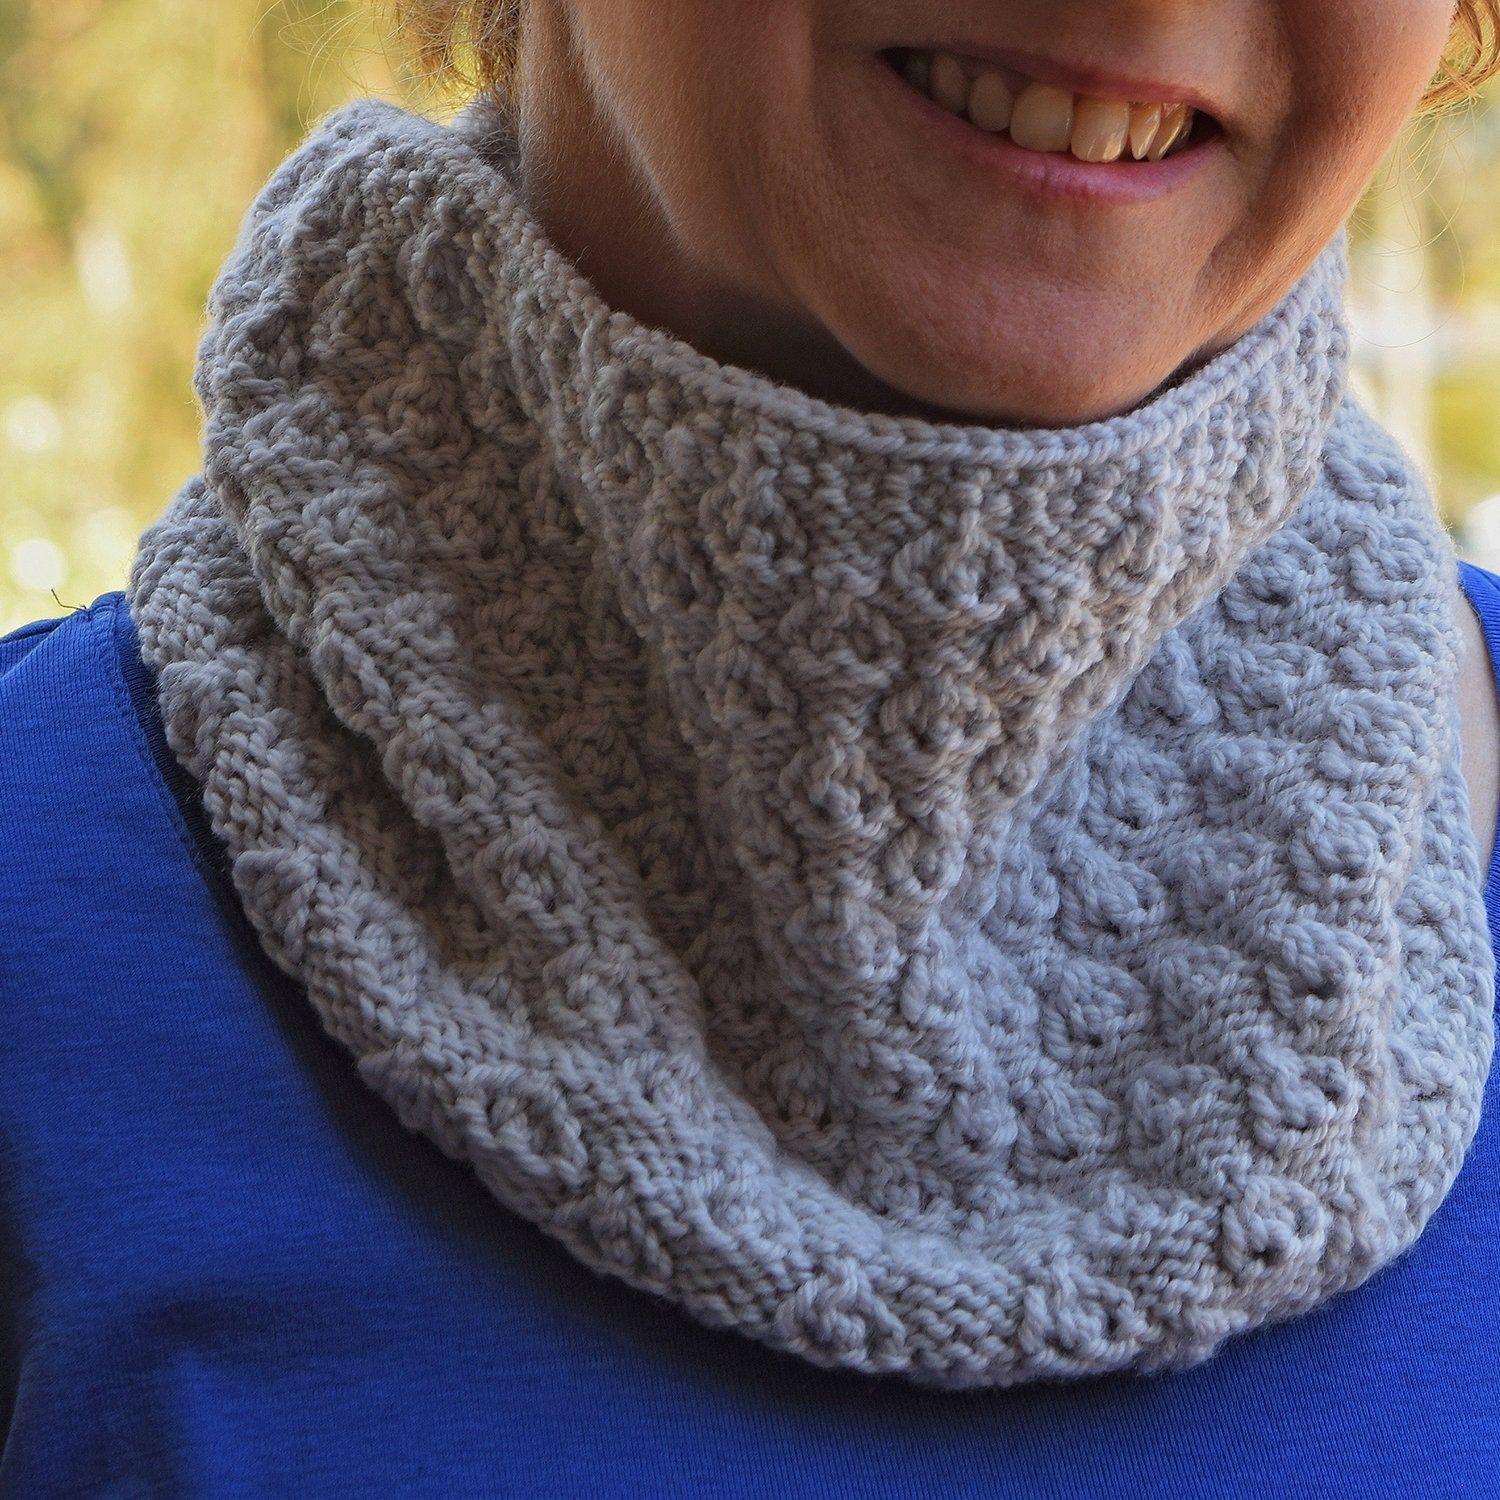 Textured Lace Knit Cowl Pattern LINDEN COWL Knitting ...